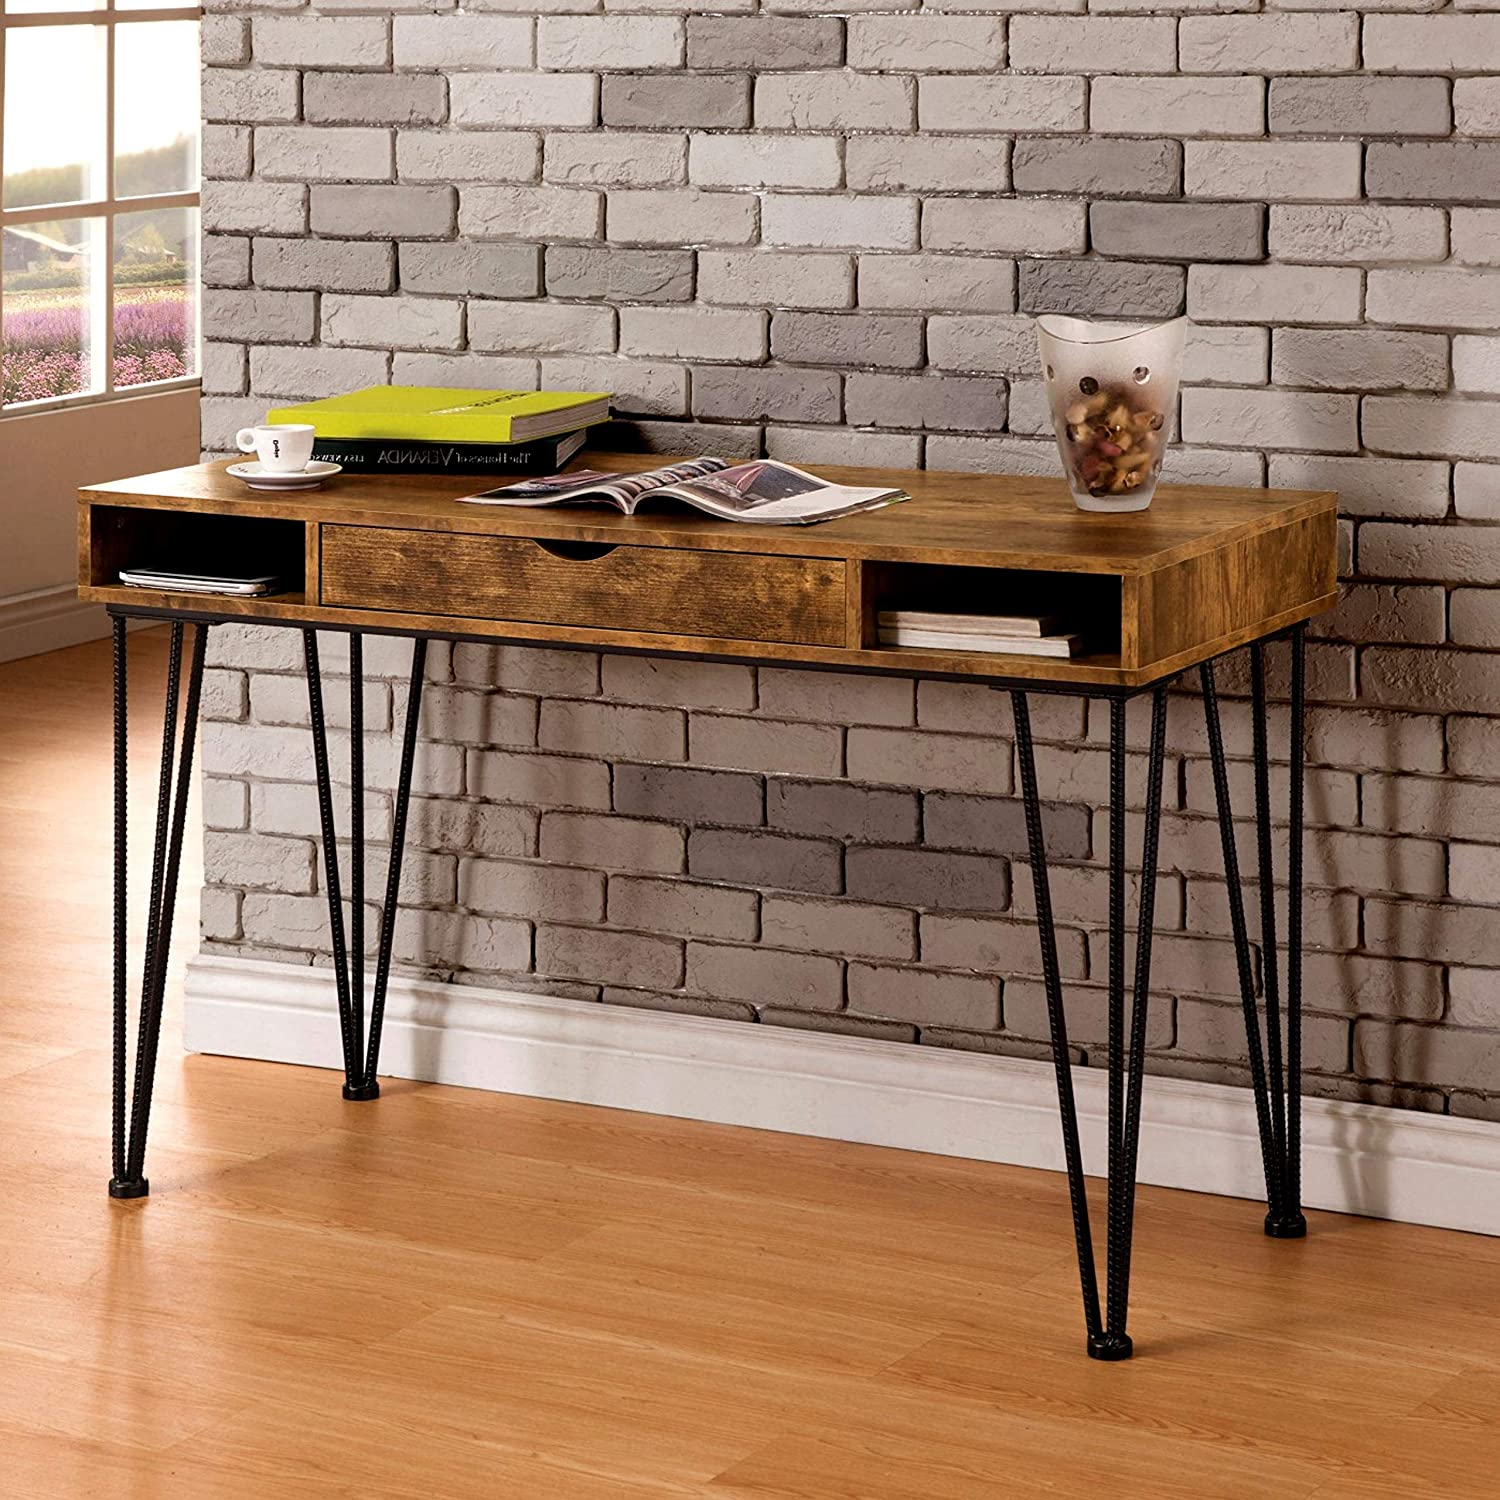 Amazon com a line furniture mid century industrial rustic design home office computer writing desk kitchen dining